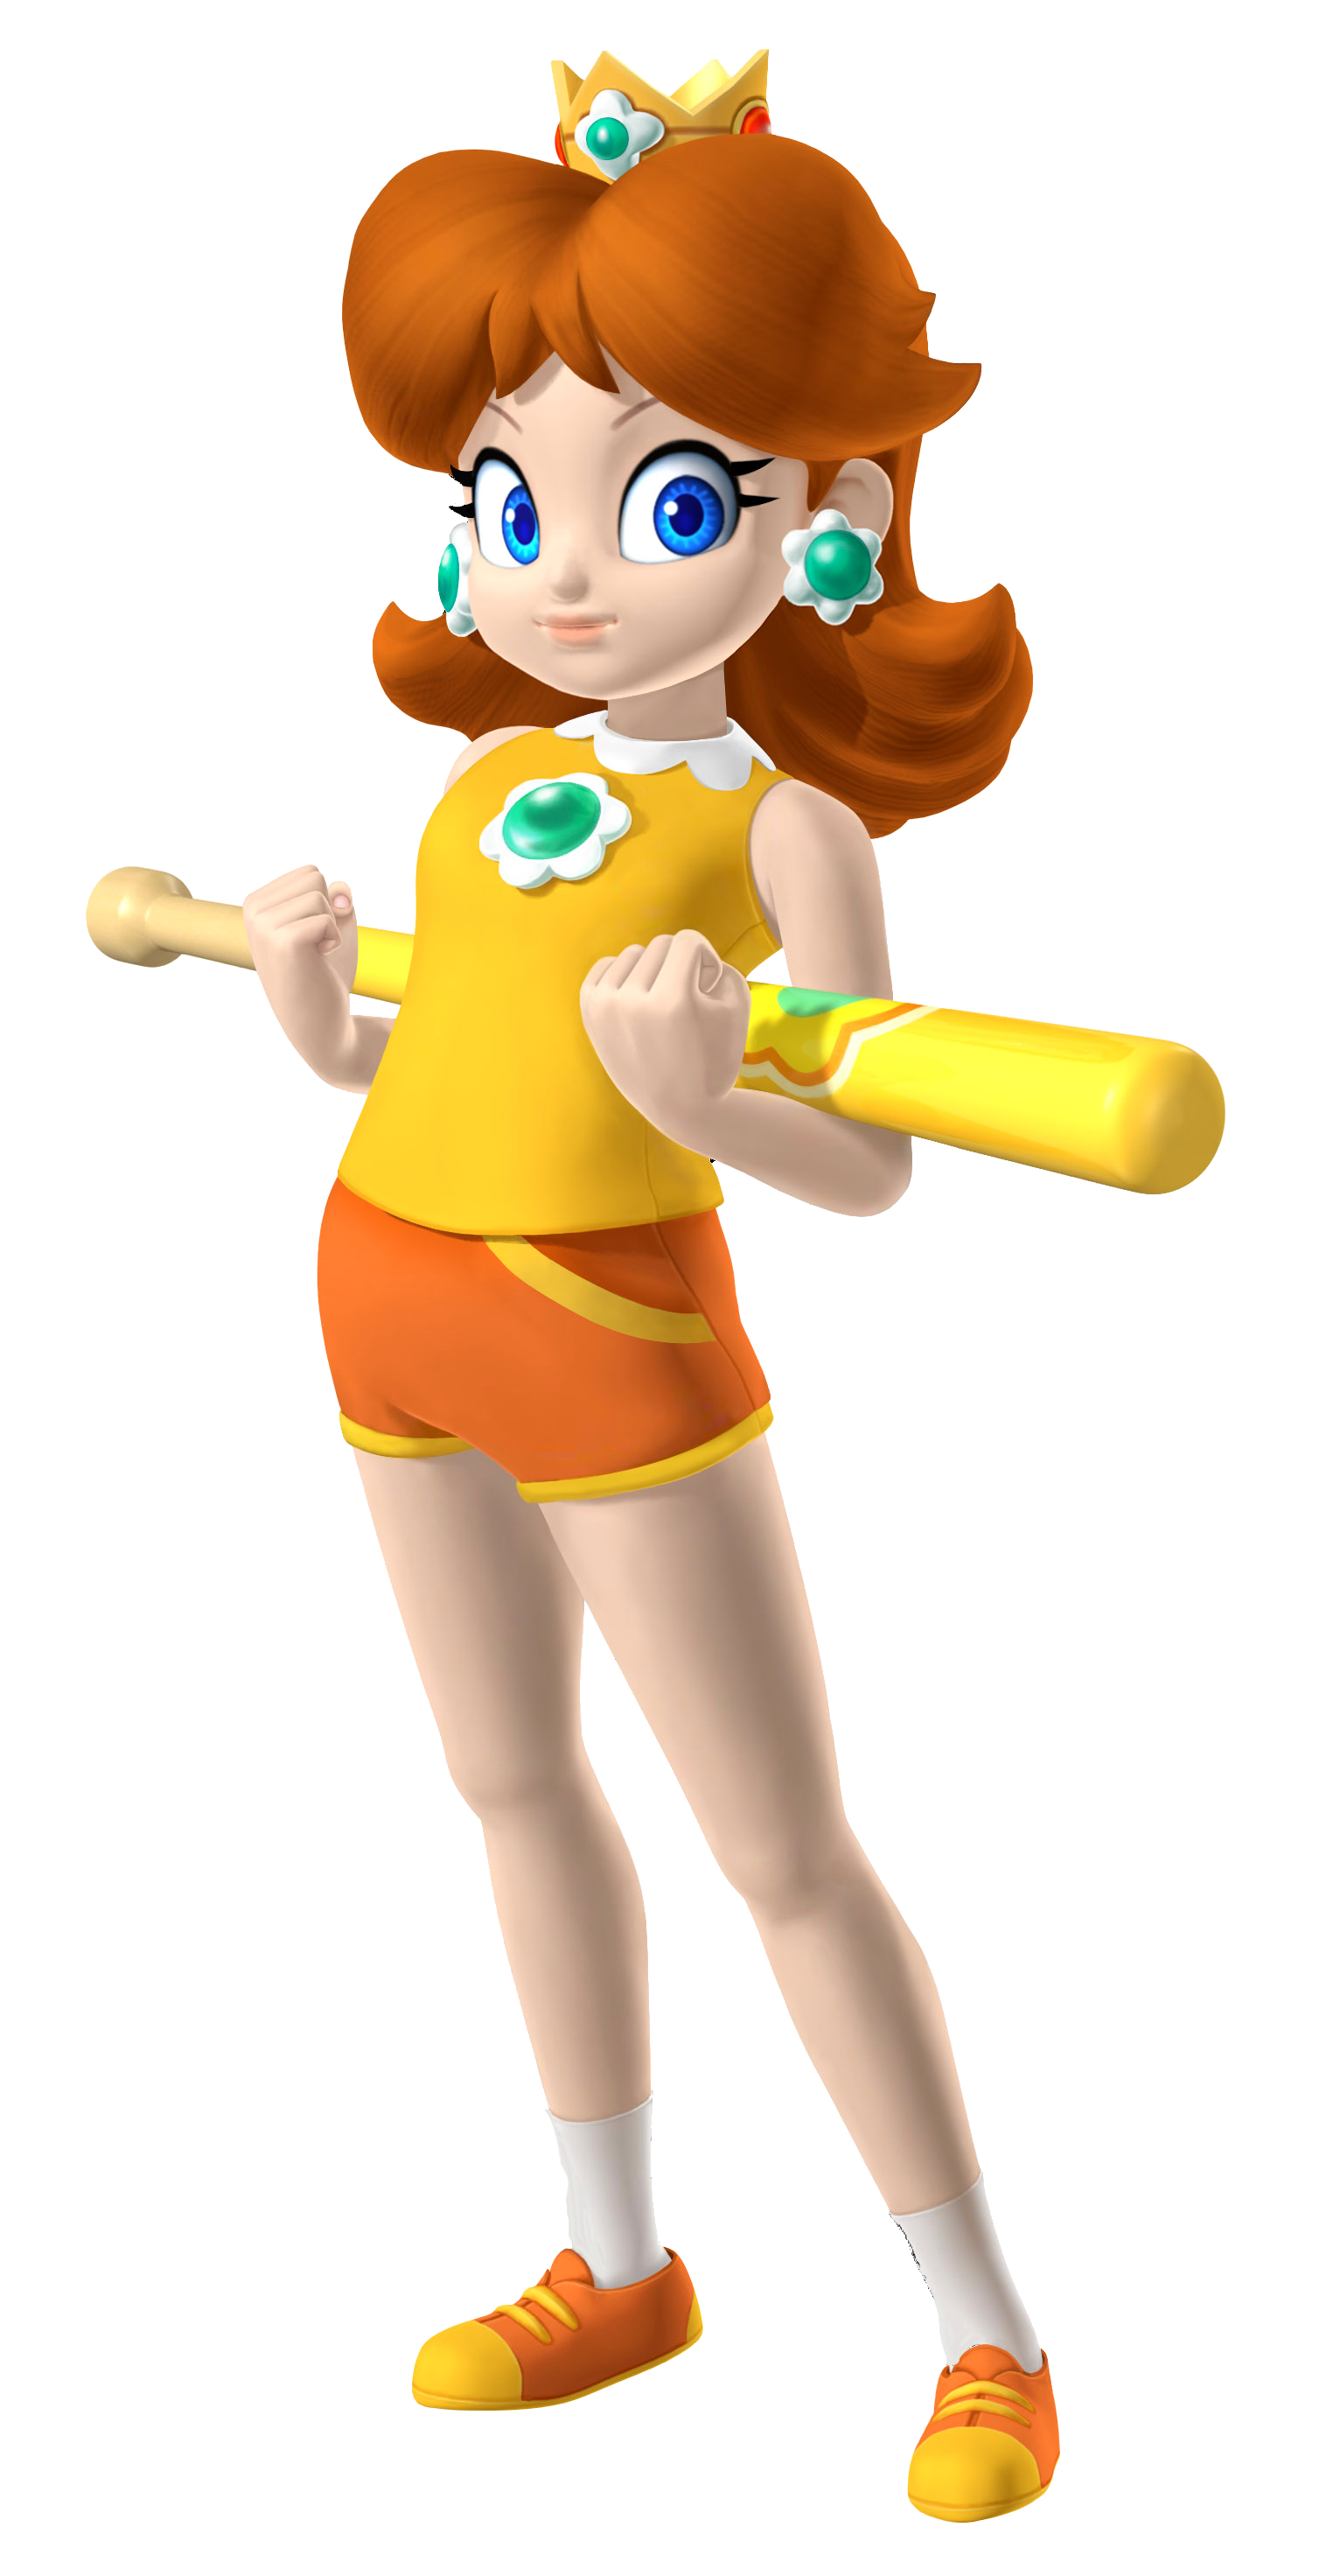 Baseball sliding clipart free download Mario Superstar Baseball | We Are Daisy Wikia | FANDOM powered by Wikia free download